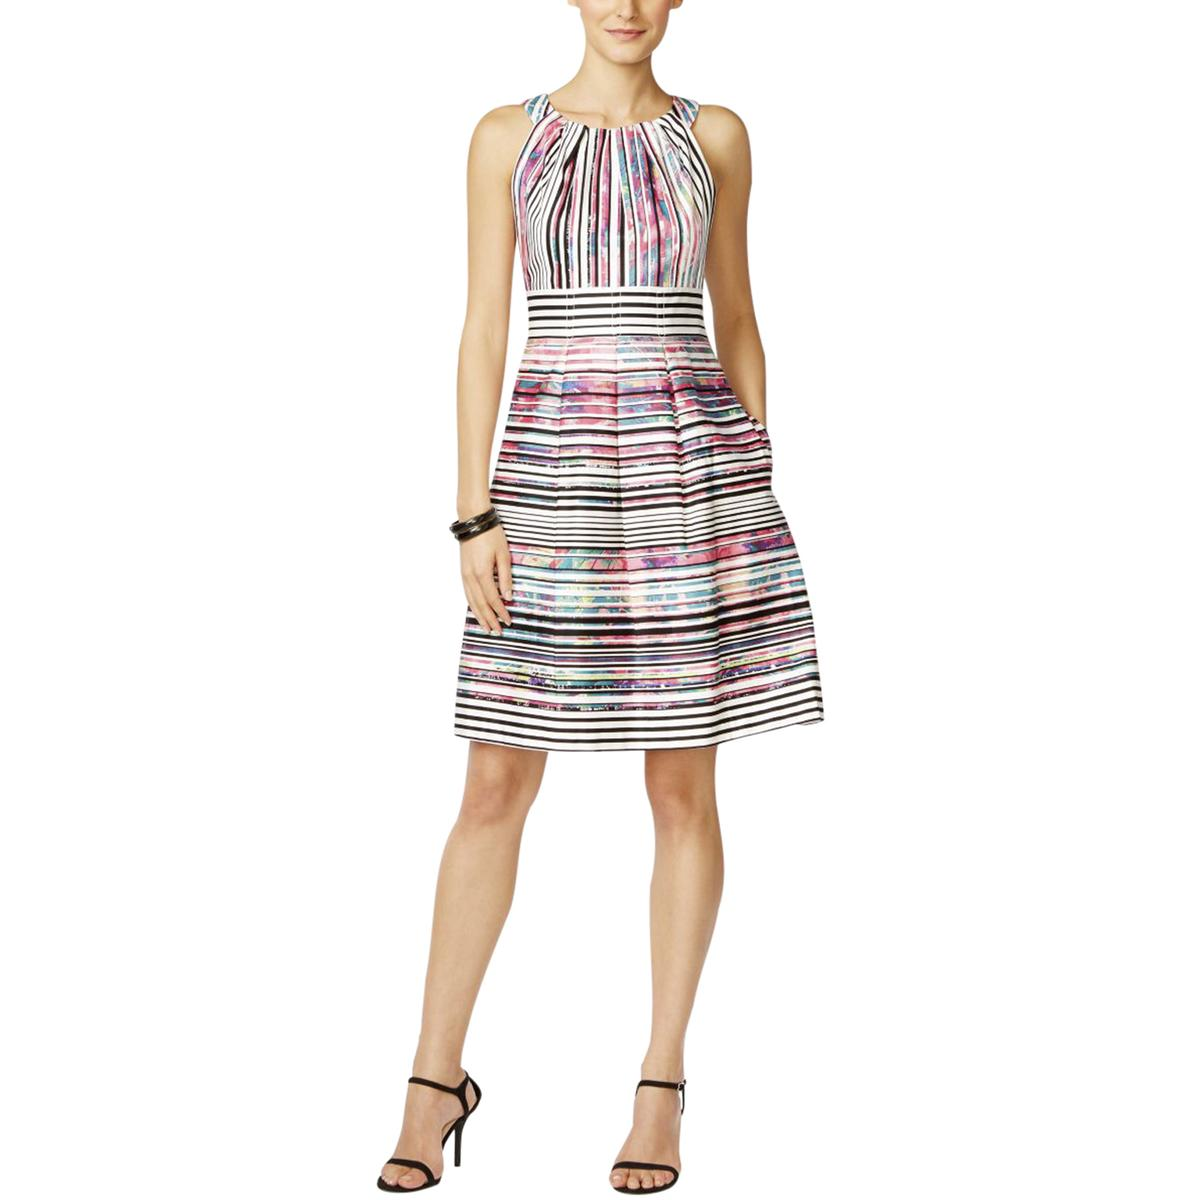 Nine West 2545 Womens Pleated Striped Printed Casual Dress